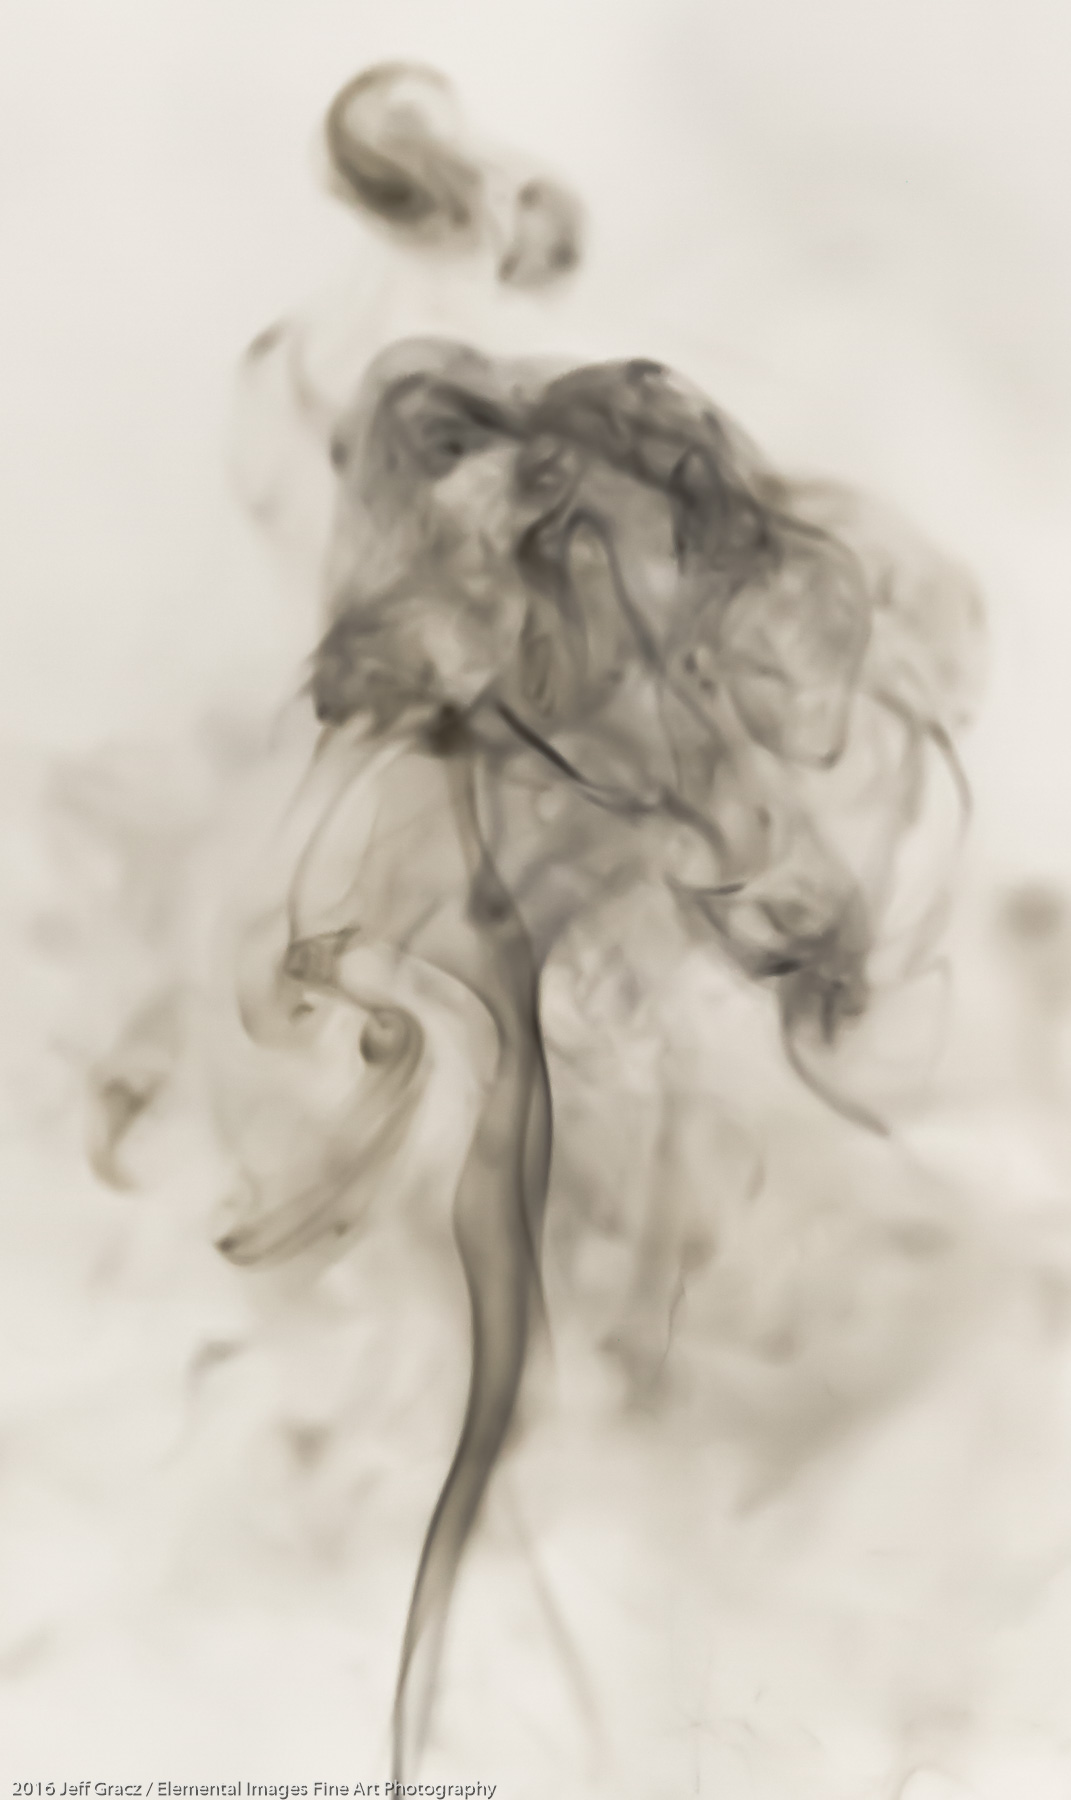 Smoke 26 | Vancouver | WA | USA - © 2016 Jeff Gracz / Elemental Images Fine Art Photography - All Rights Reserved Worldwide